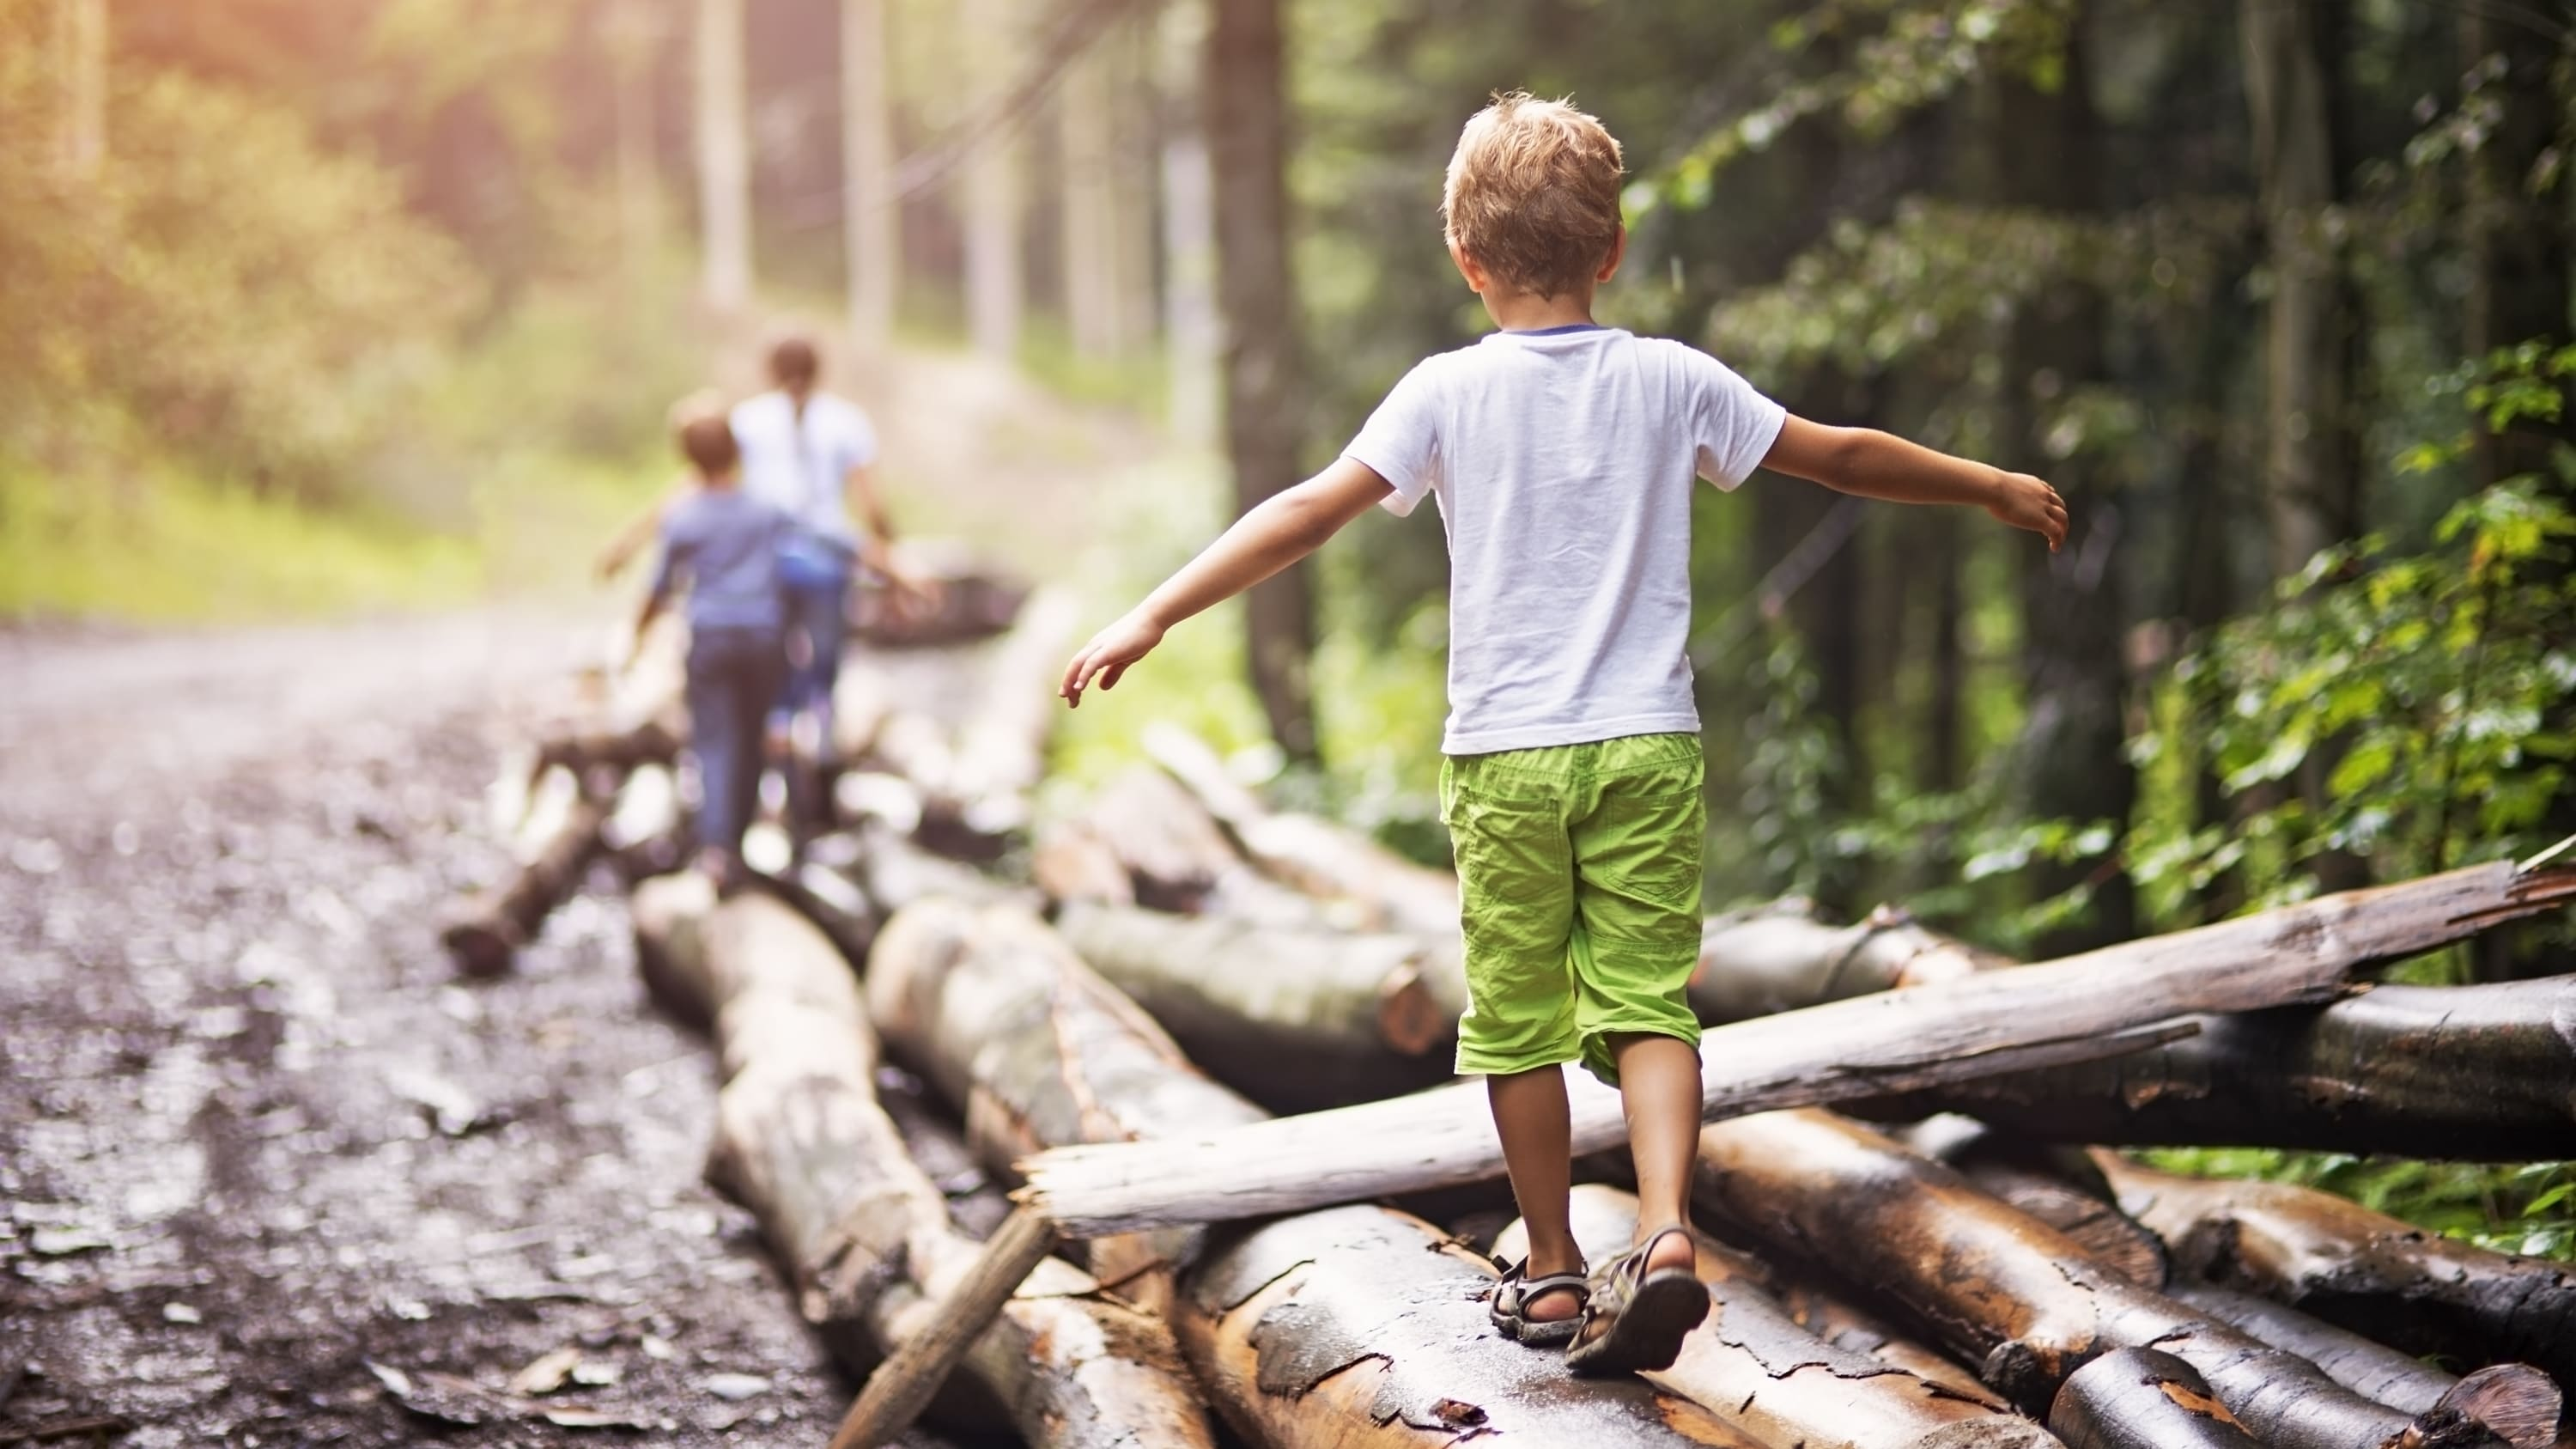 Children who might have juvenile idiopathic arthritis try to balance as they walk across some logs in the woods.